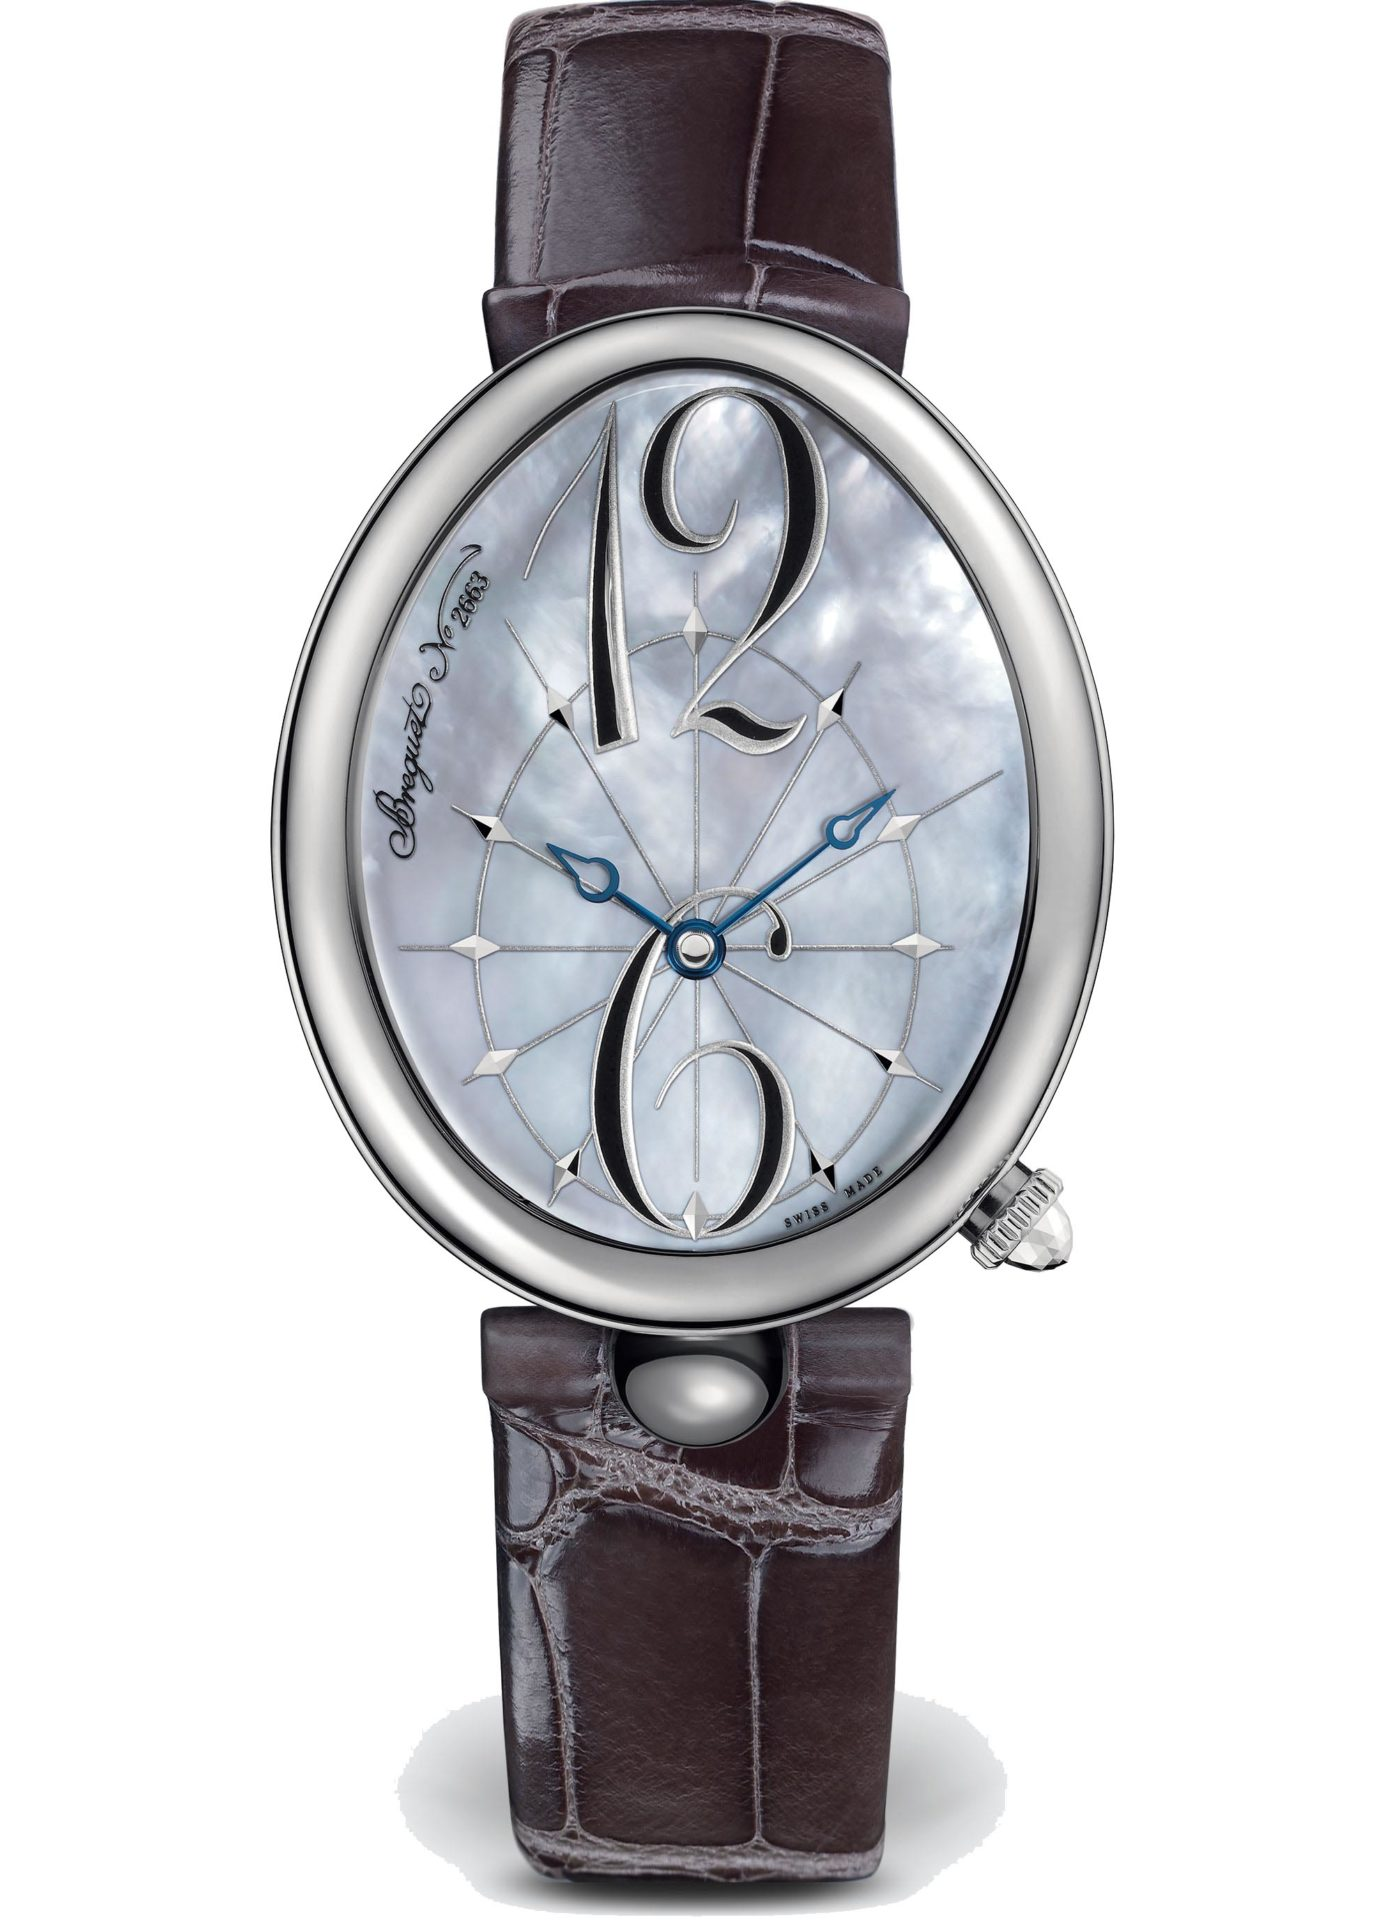 Breguet-Reine-de-Naples-8967-Hall-of-Time-8967st-58-986